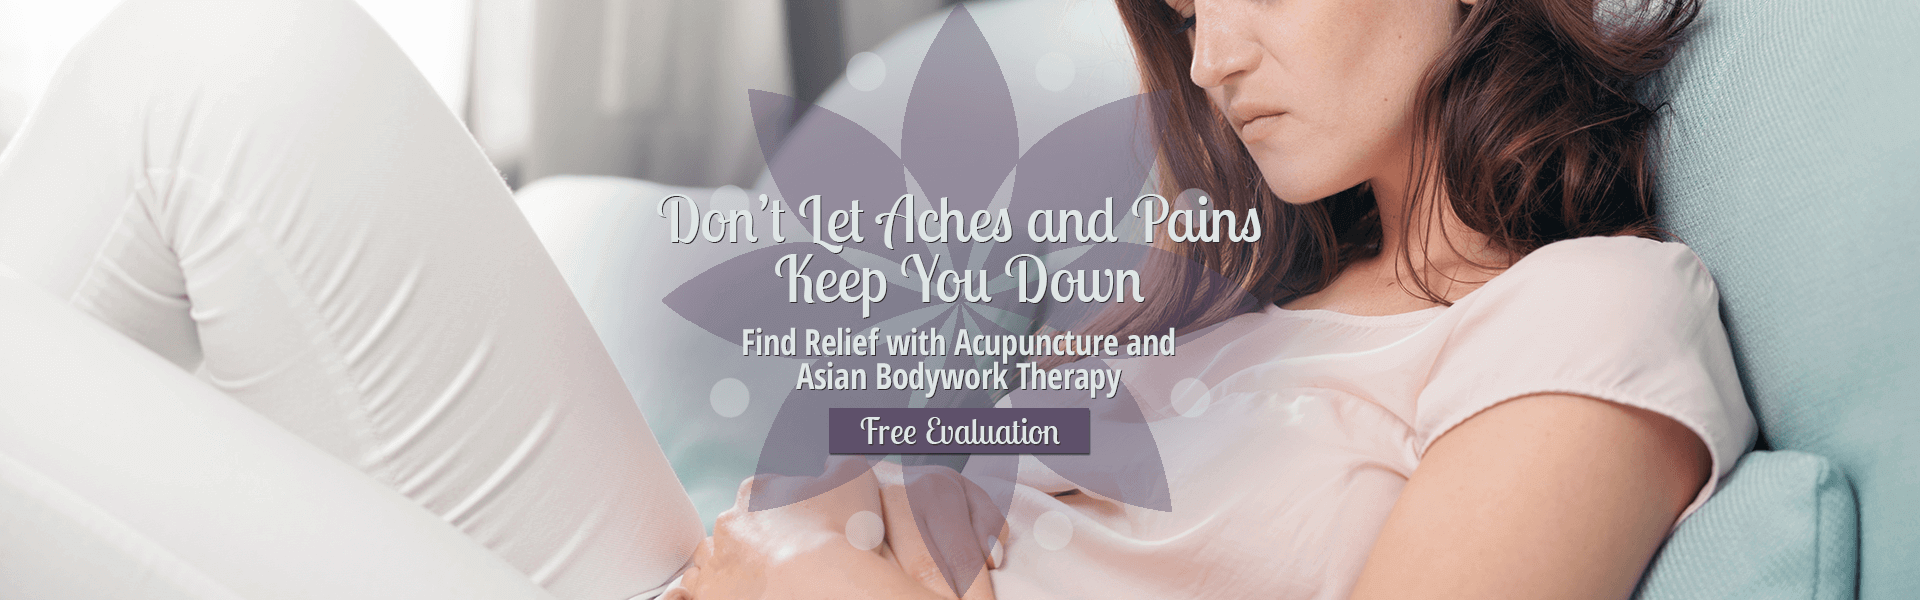 annapolis md acupuncture and asian bodywork therapy